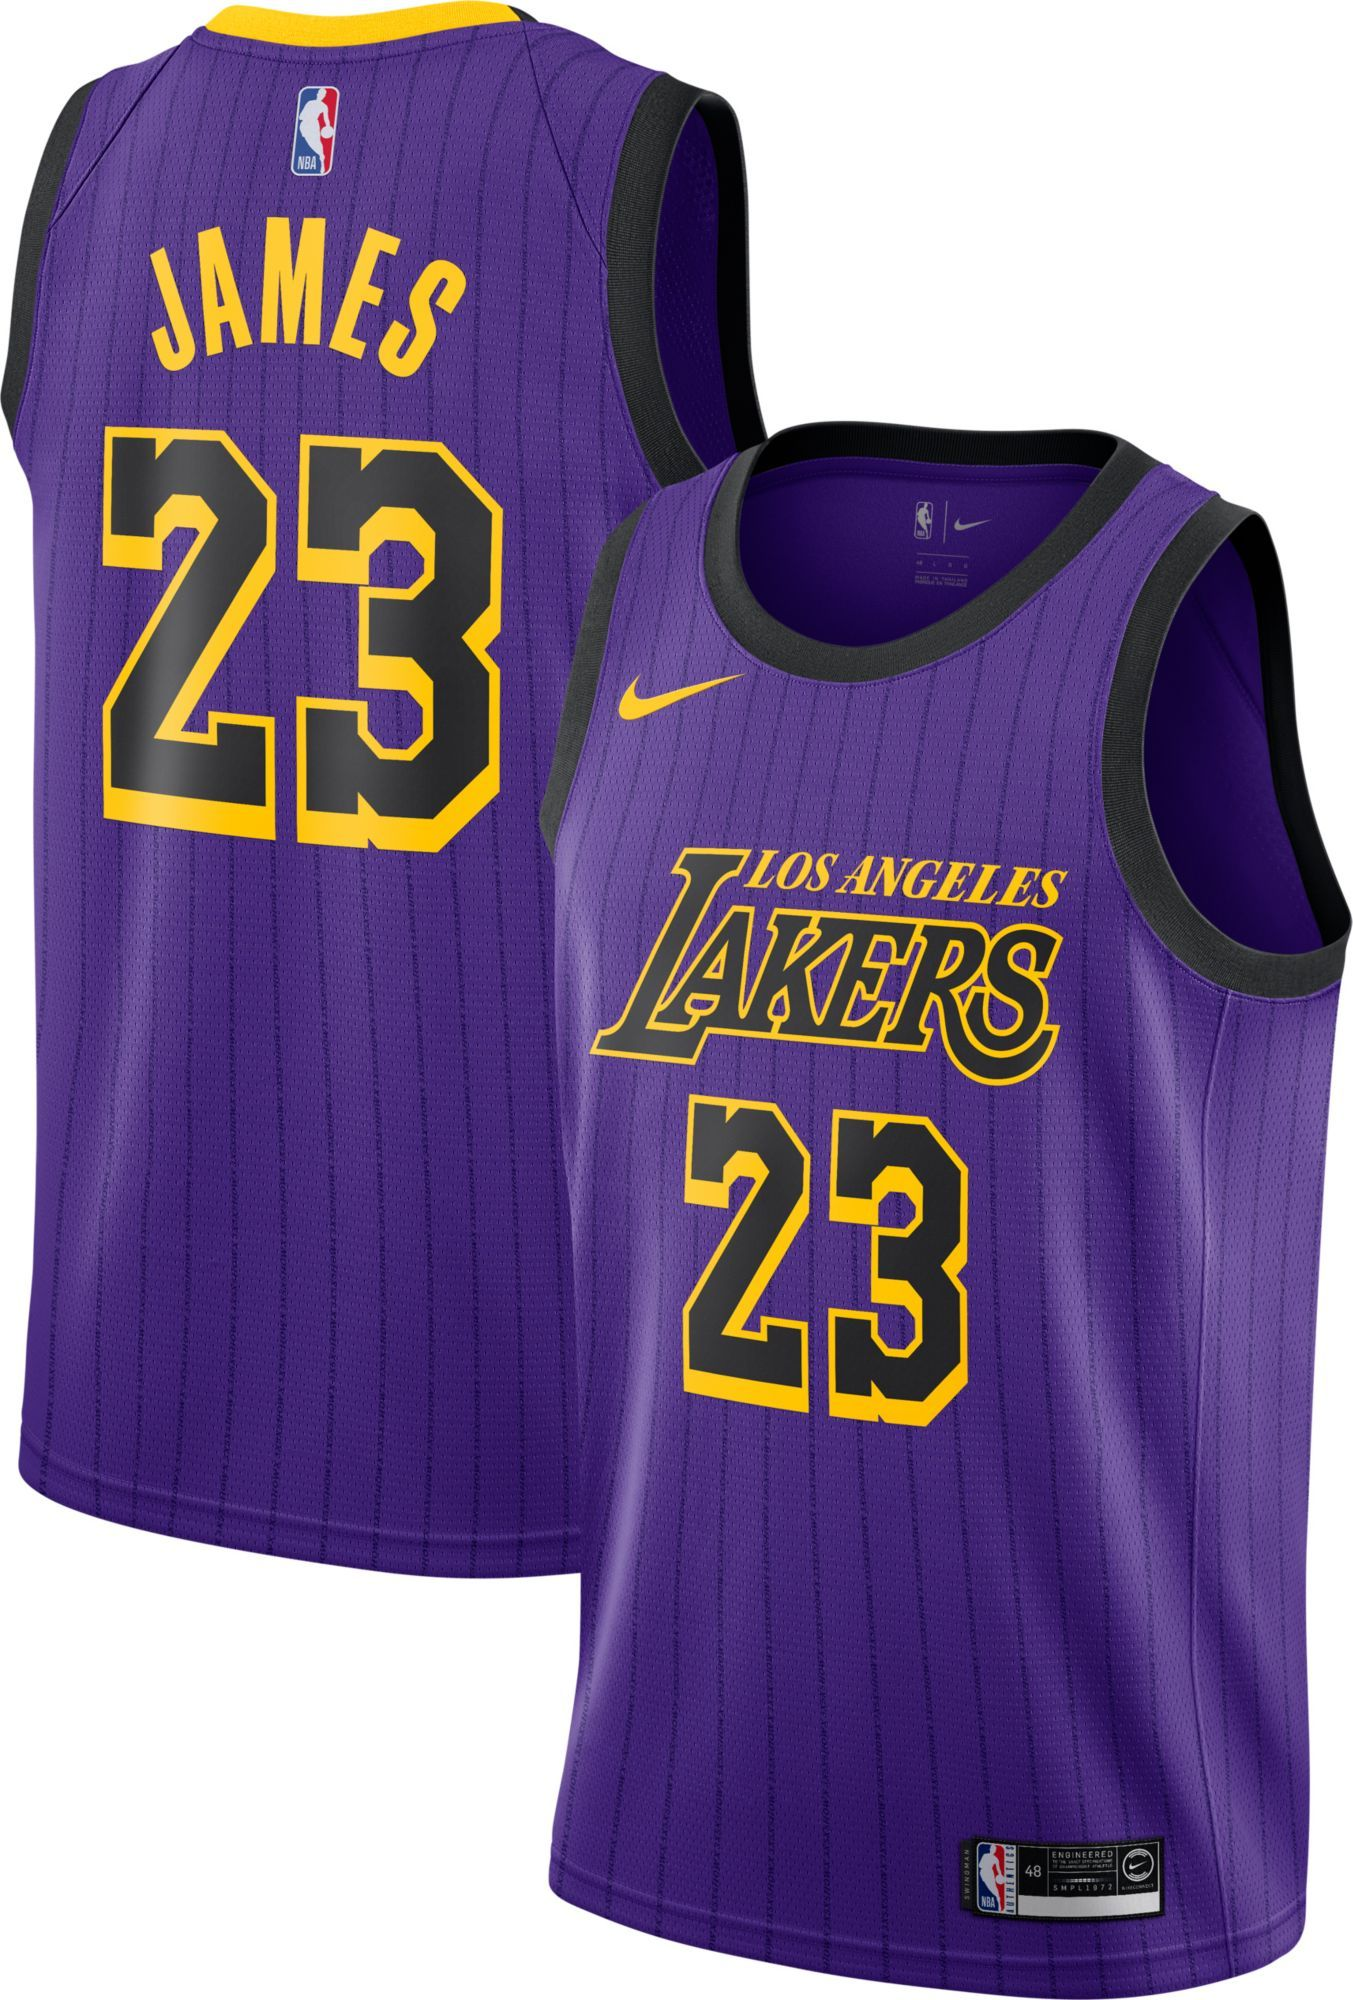 0ec8d4bb8 Nike Men s Los Angeles Lakers LeBron James Dri-FIT City Edition Swingman  Jersey